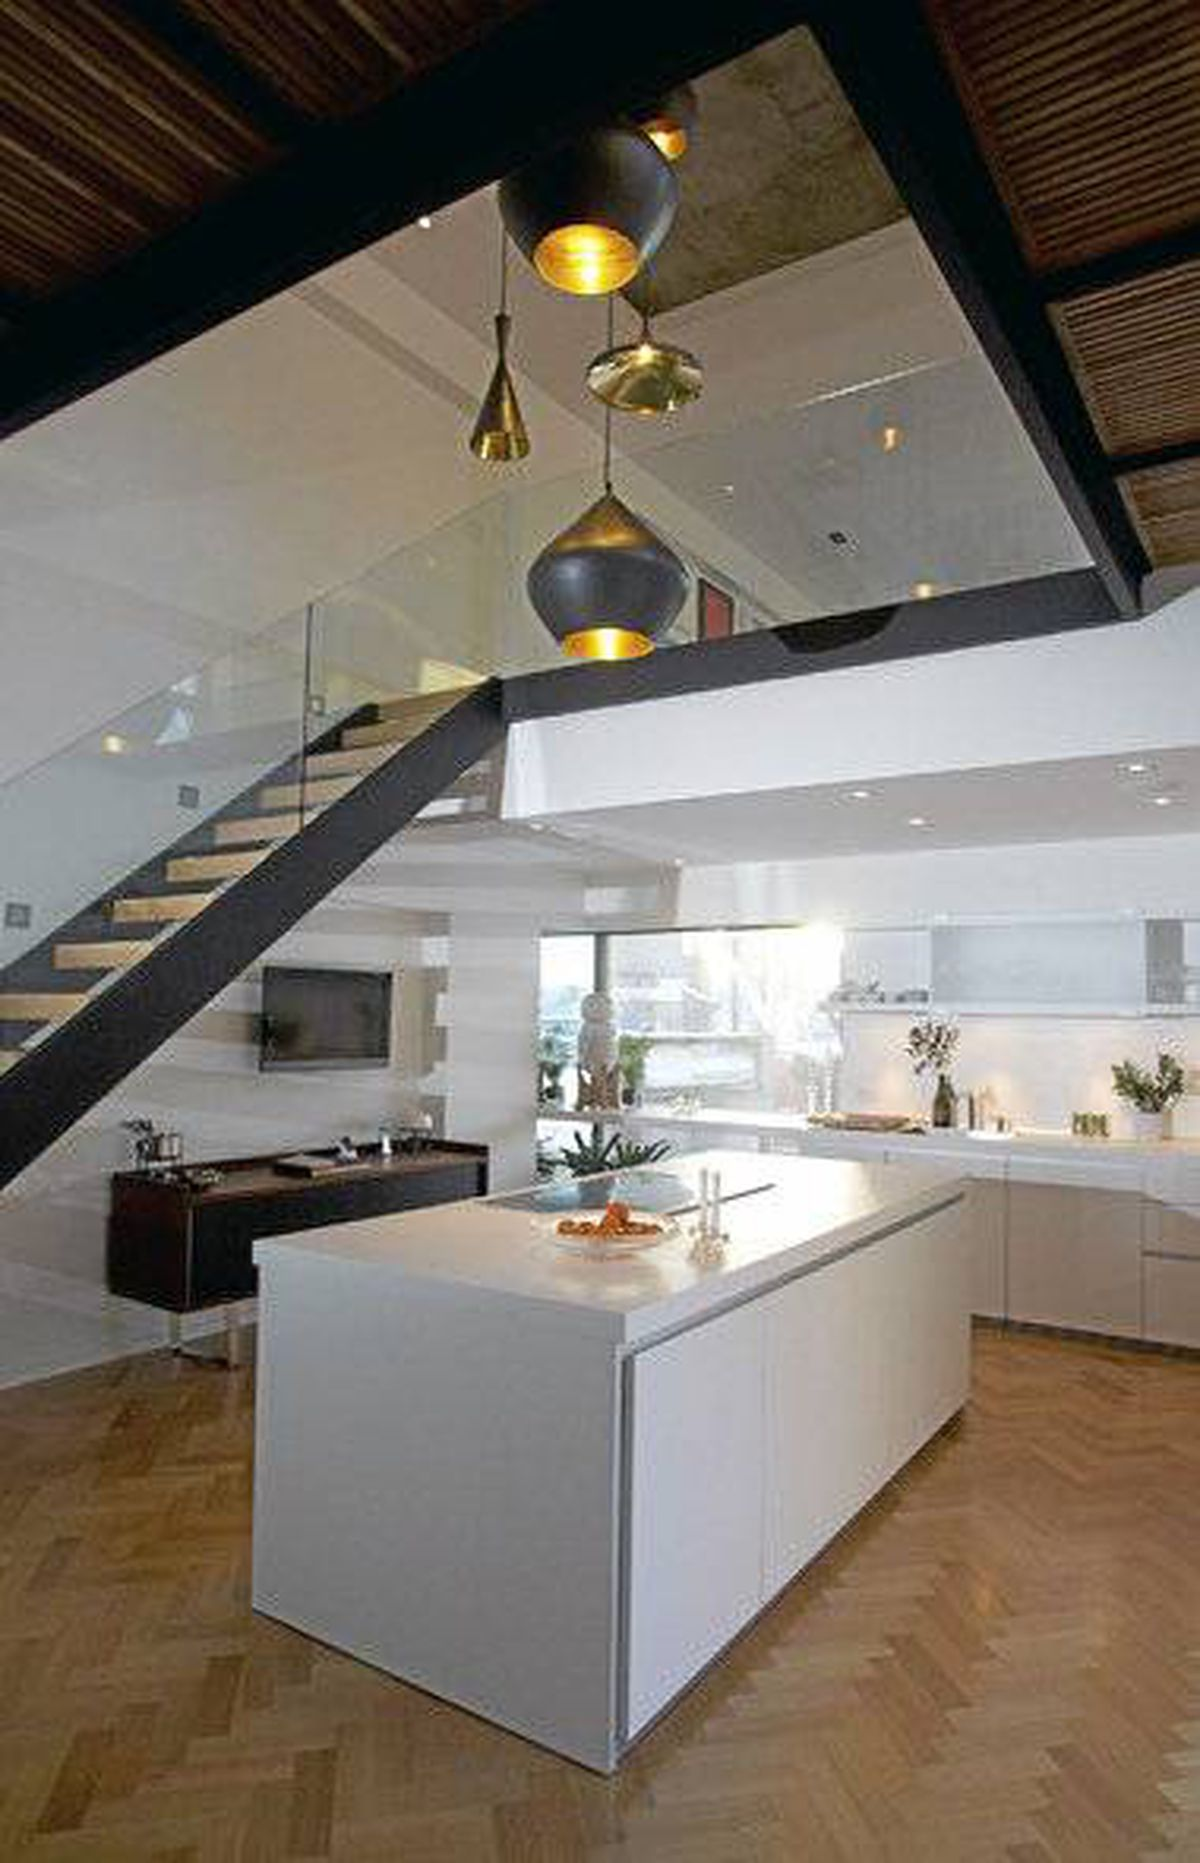 Interior photo showing kitchen in Byron Peart's condo at Habitat 67 in Montreal.